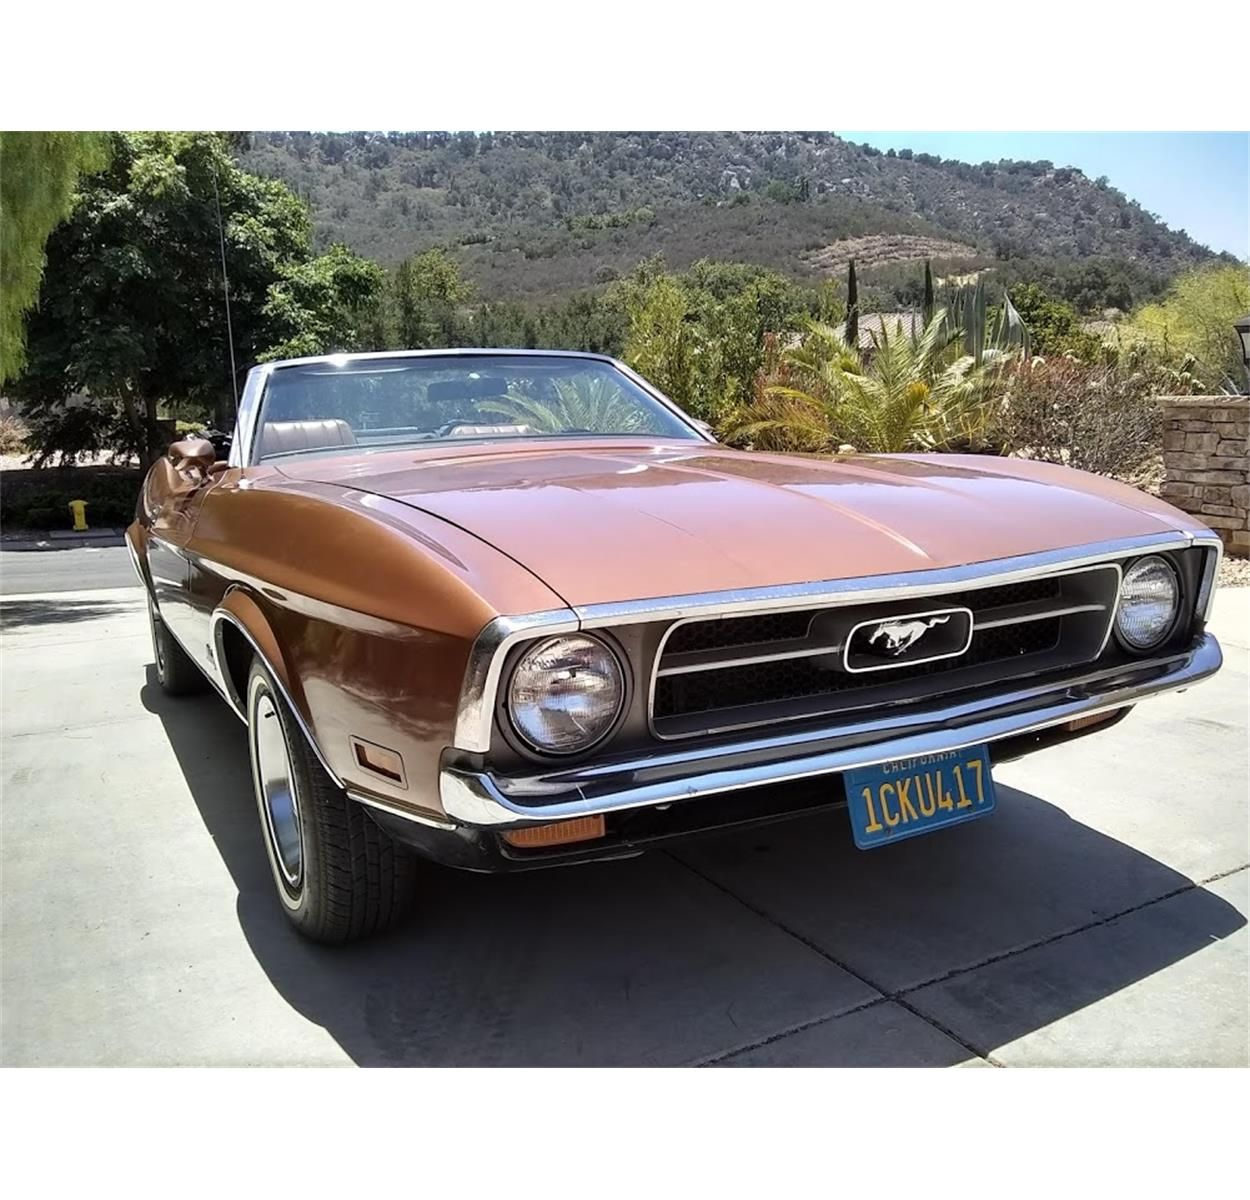 Photo of '72 Mustang OU6D Ford mustang, Mustang